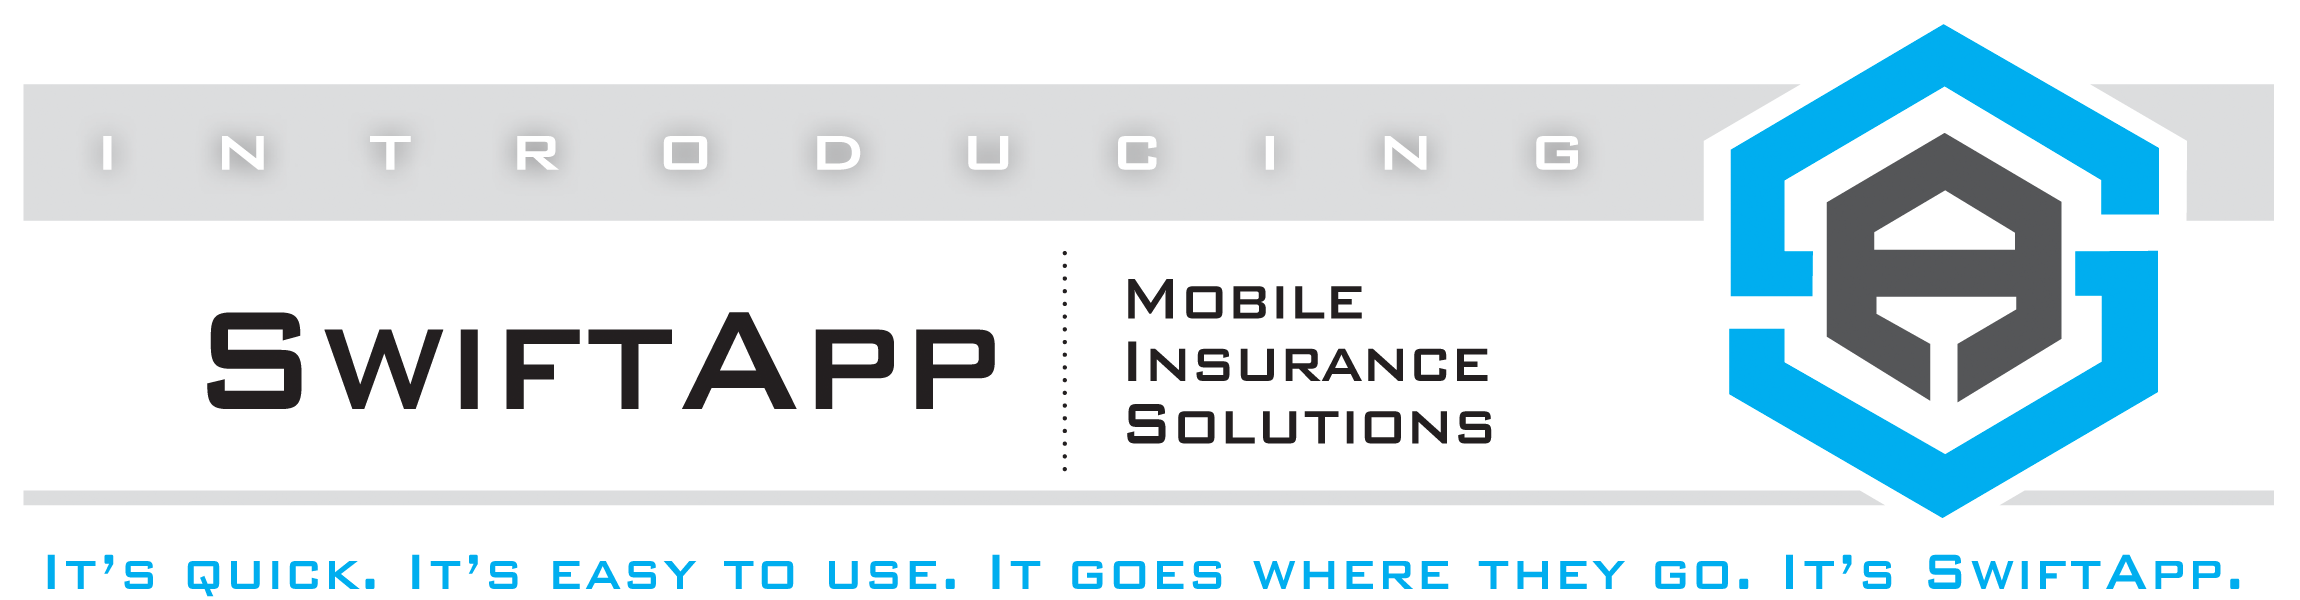 swiftapp mobile insurance solutions